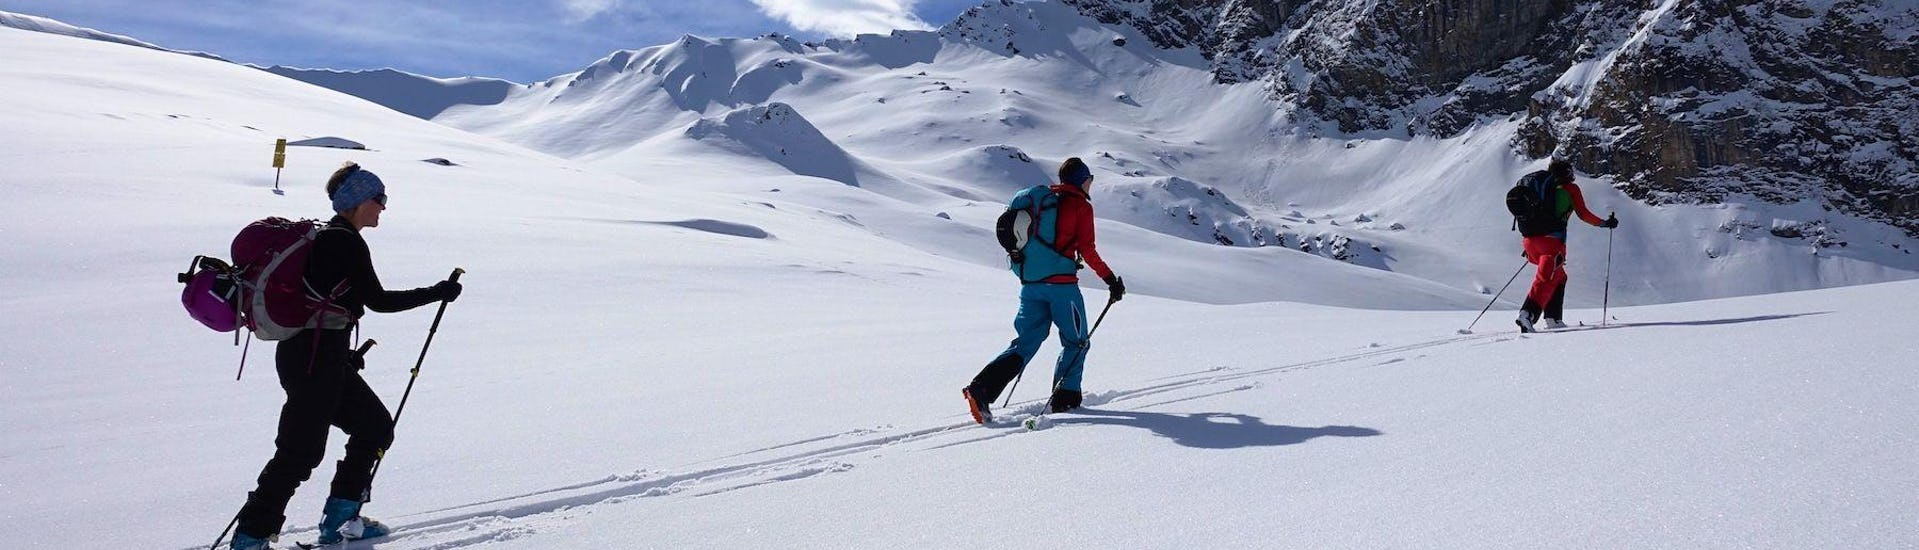 "Ski Touring Group ""Beginner Course Ski Touring"""